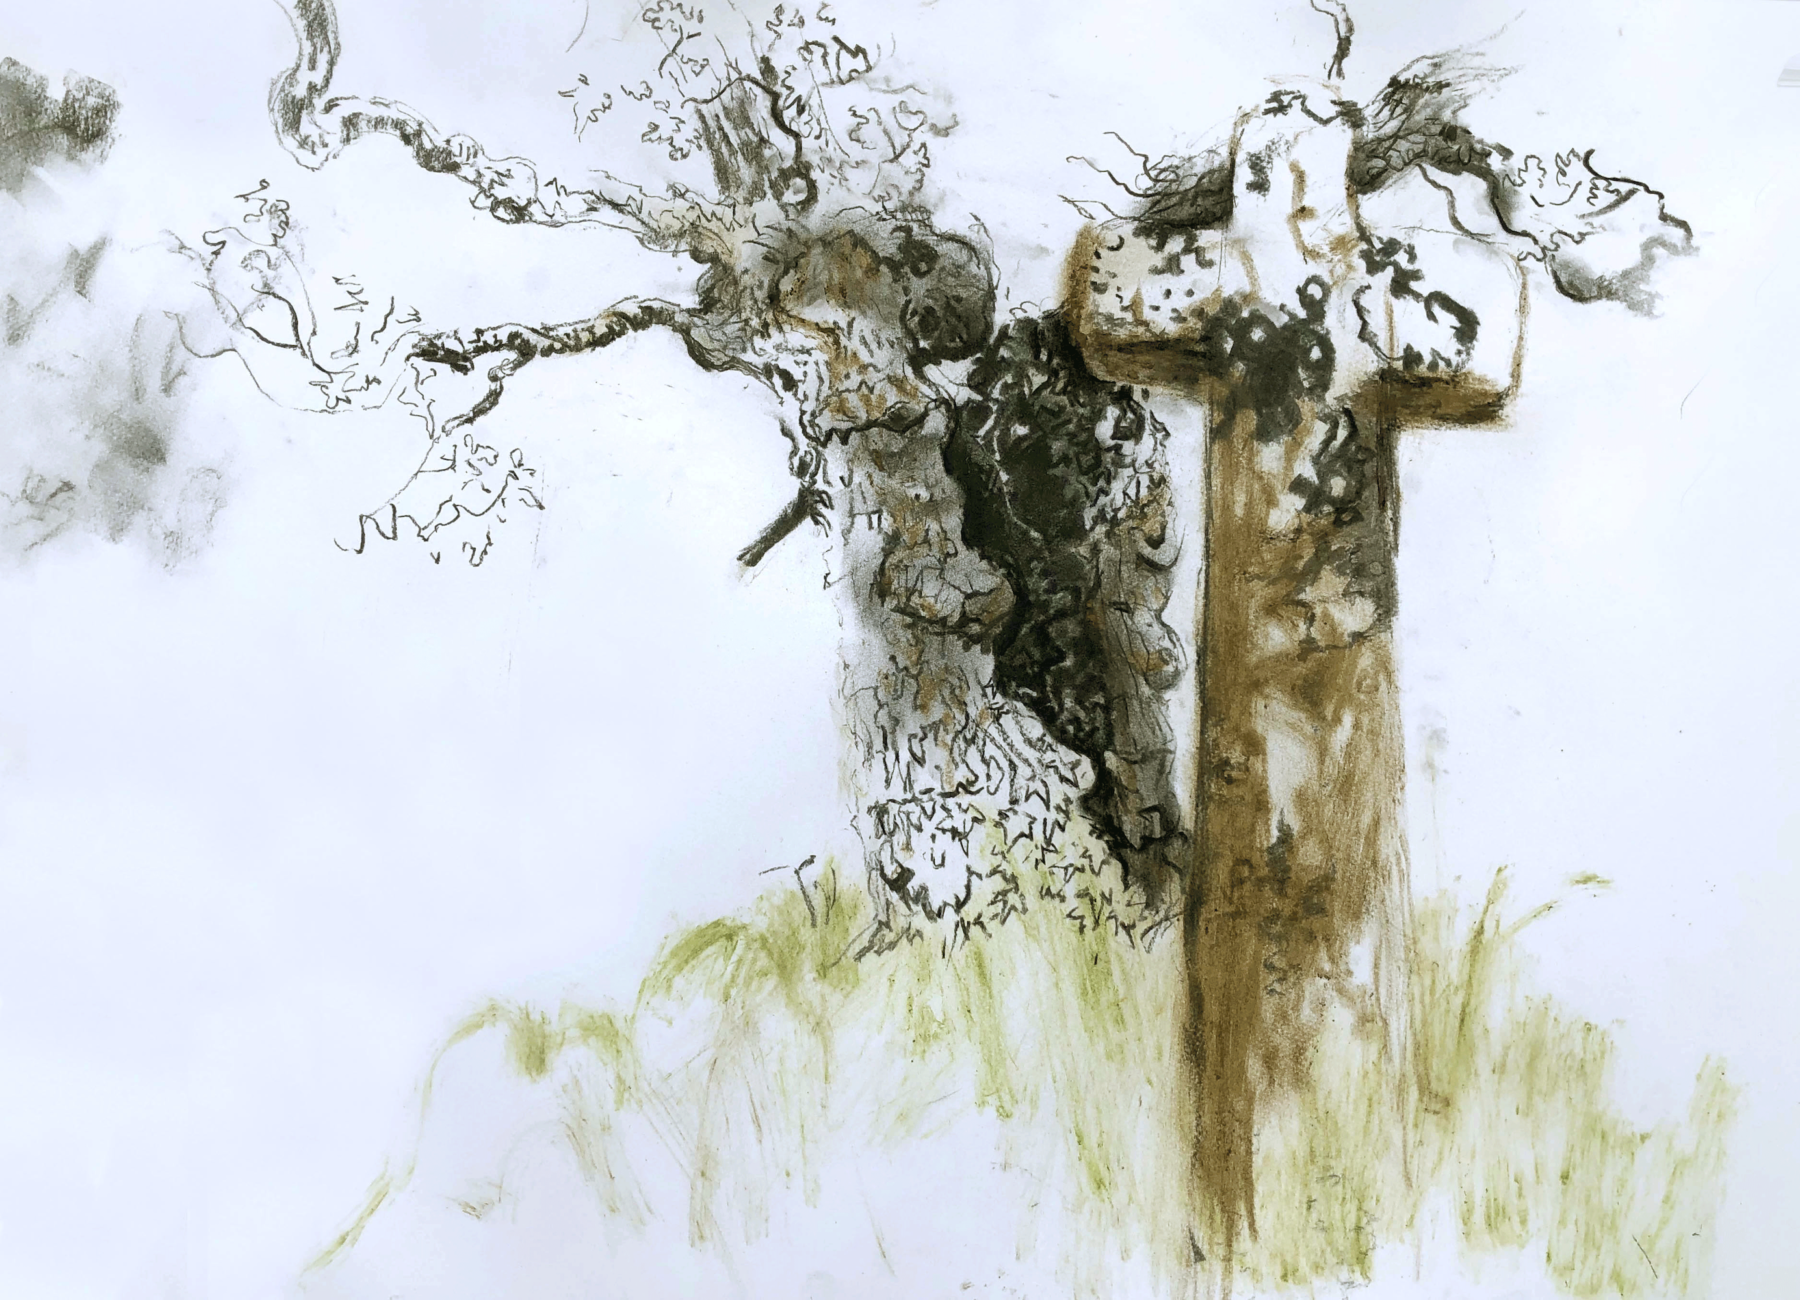 An abstracted tree and cross float against a white background